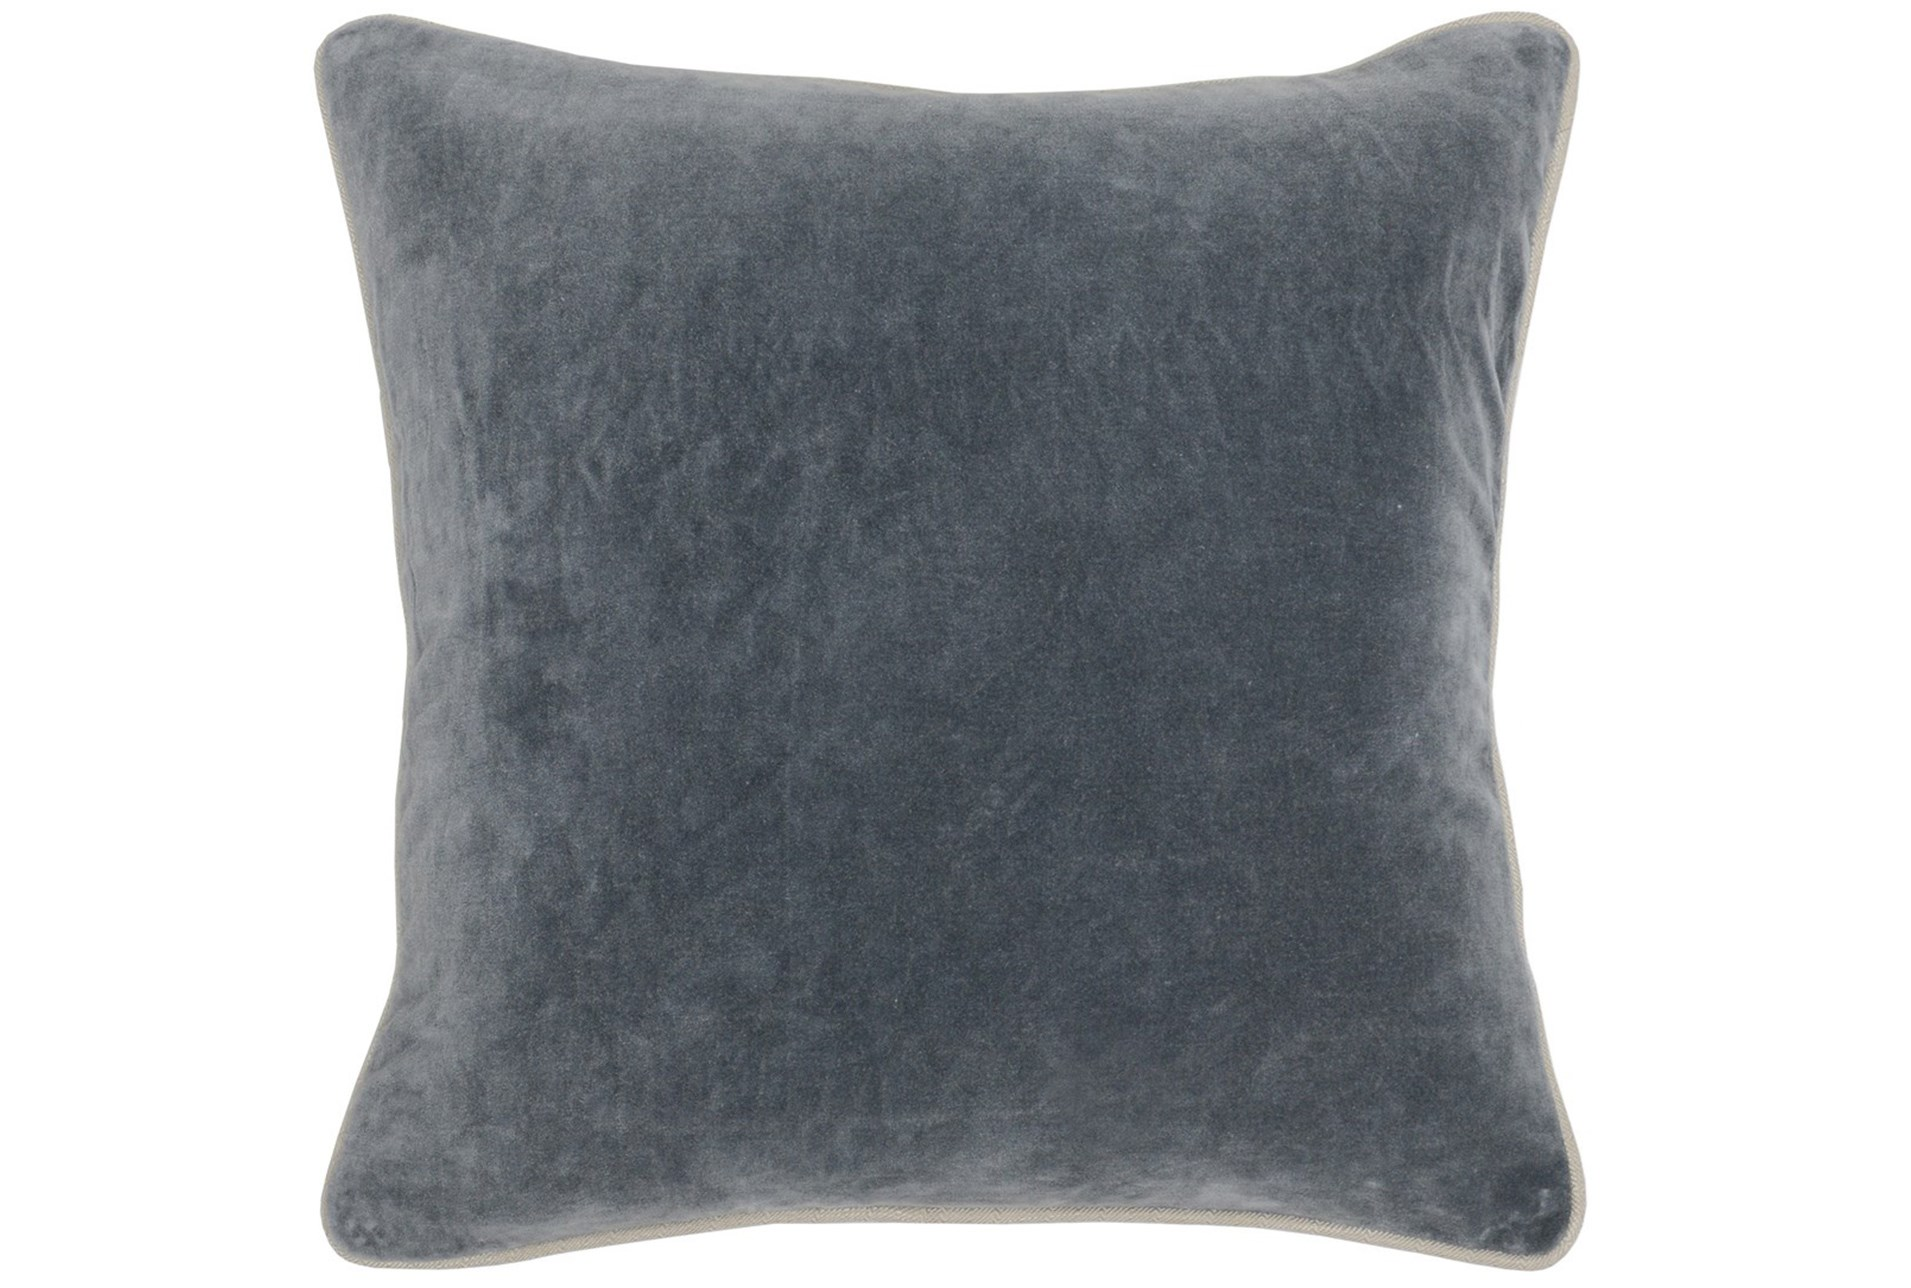 Accent Pillow Steel Grey Washed Velvet 18x18 Living Spaces